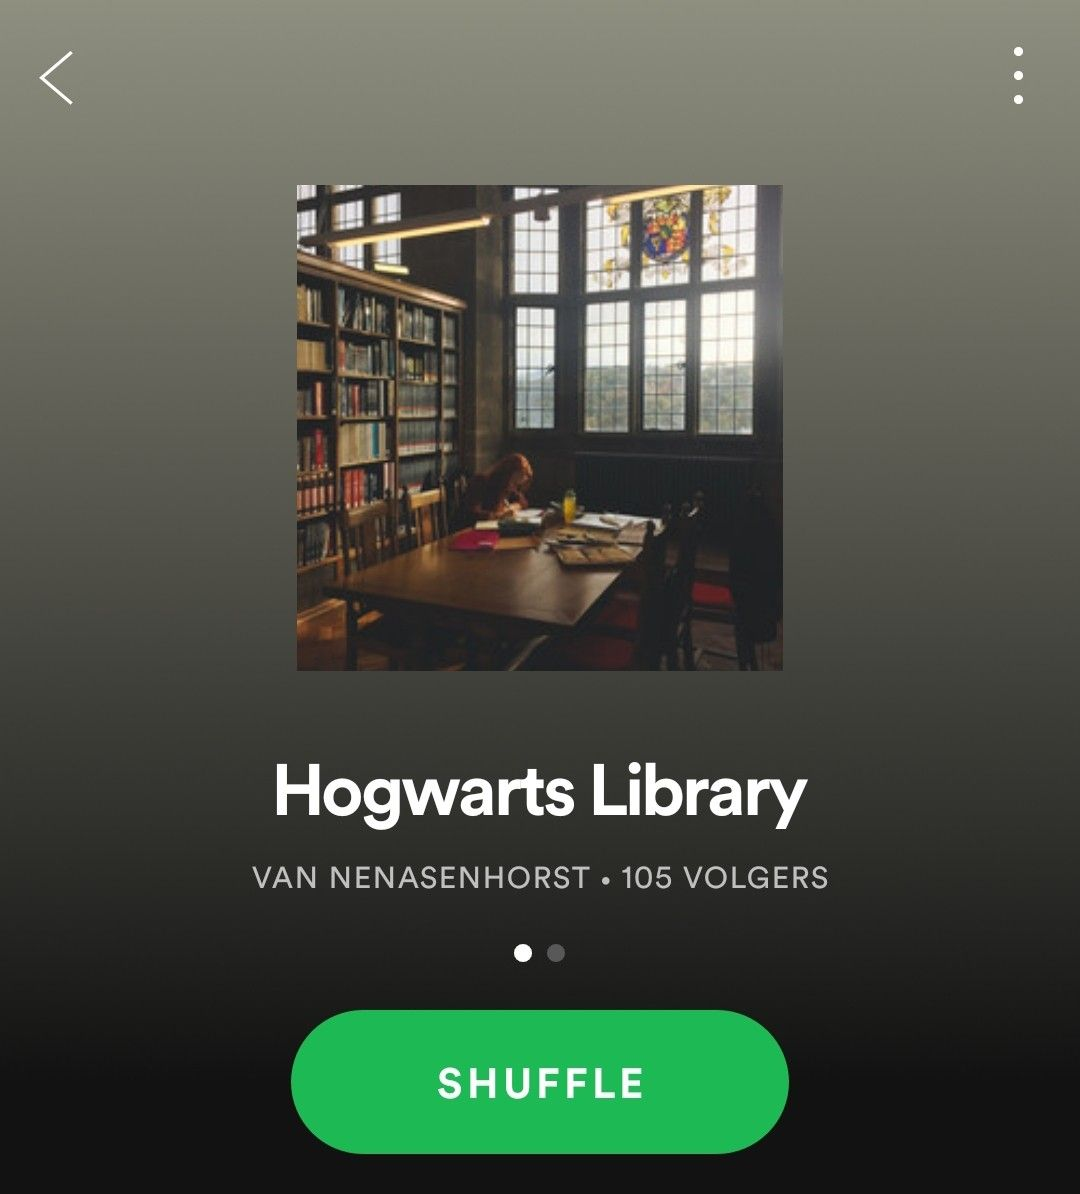 Hogwarts Library Harry Potter Inspired Spotify Playlist With Calm Music For Studying Reading Sleeping Or Music For Studying Hogwarts Library Song Playlist